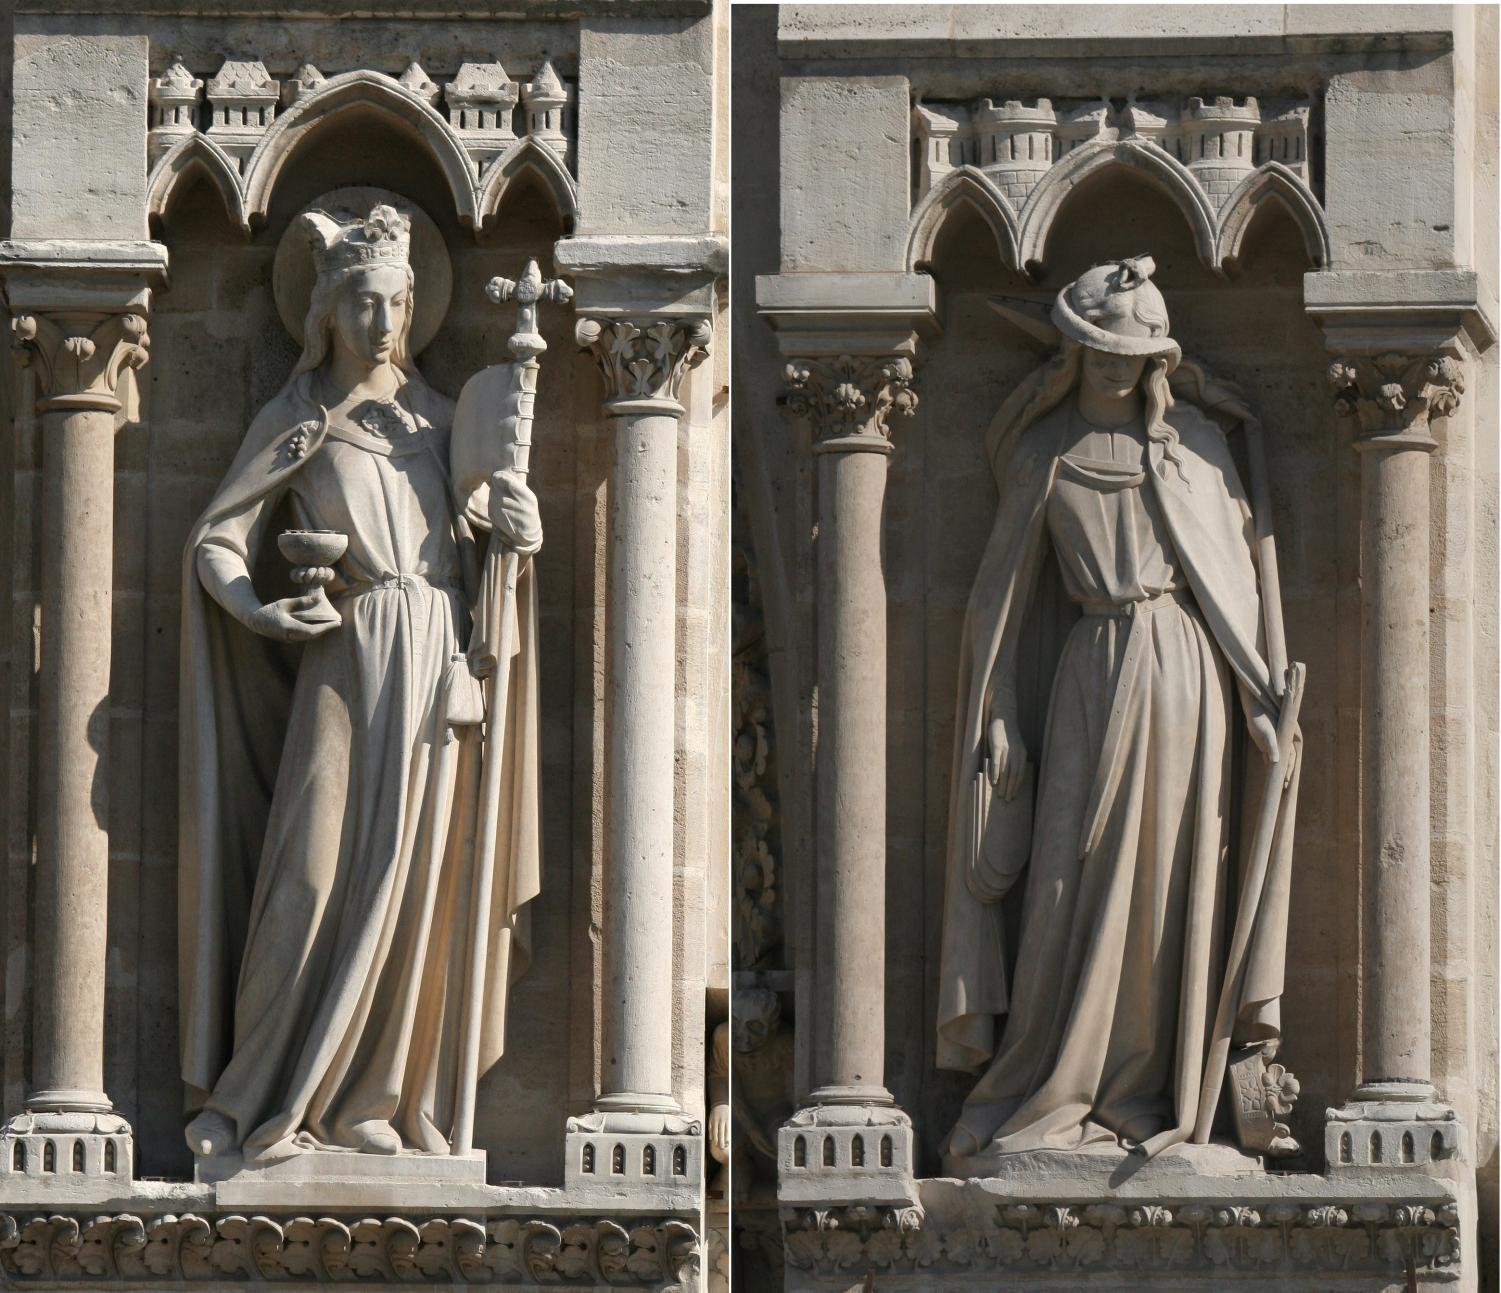 Notre-Dame de Paris. 3rd statue (from left to right) on the West Entrance: the Synagogue.